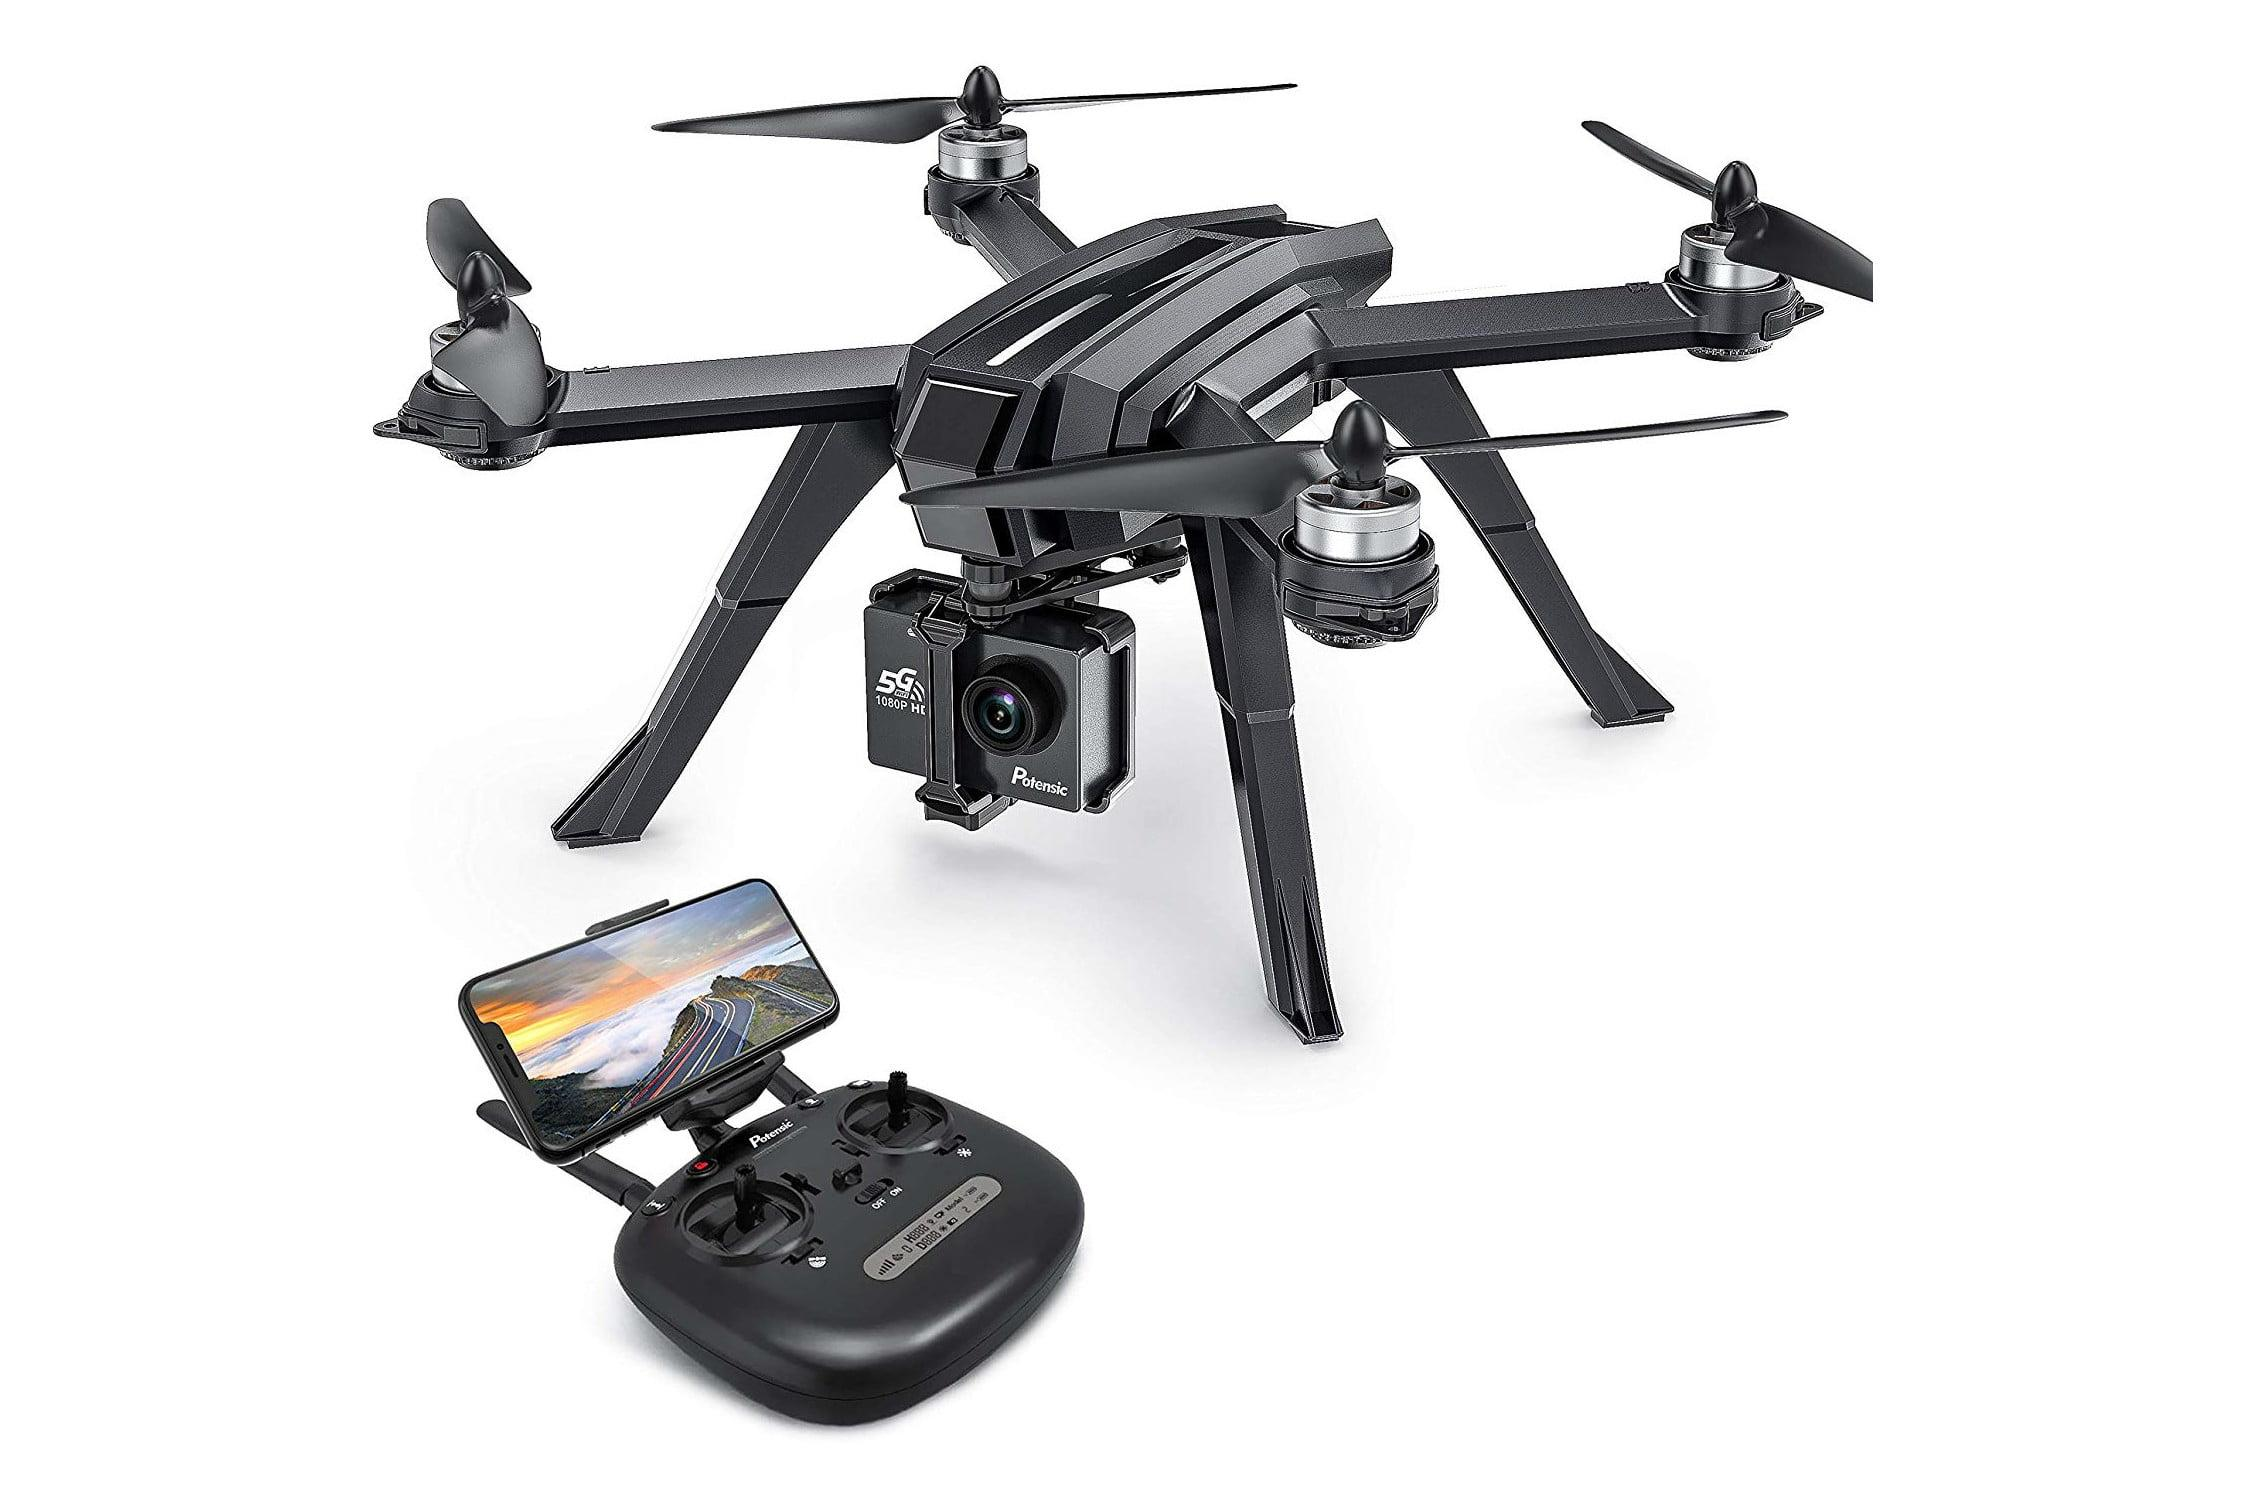 low cost drone based application - HD2246×1497